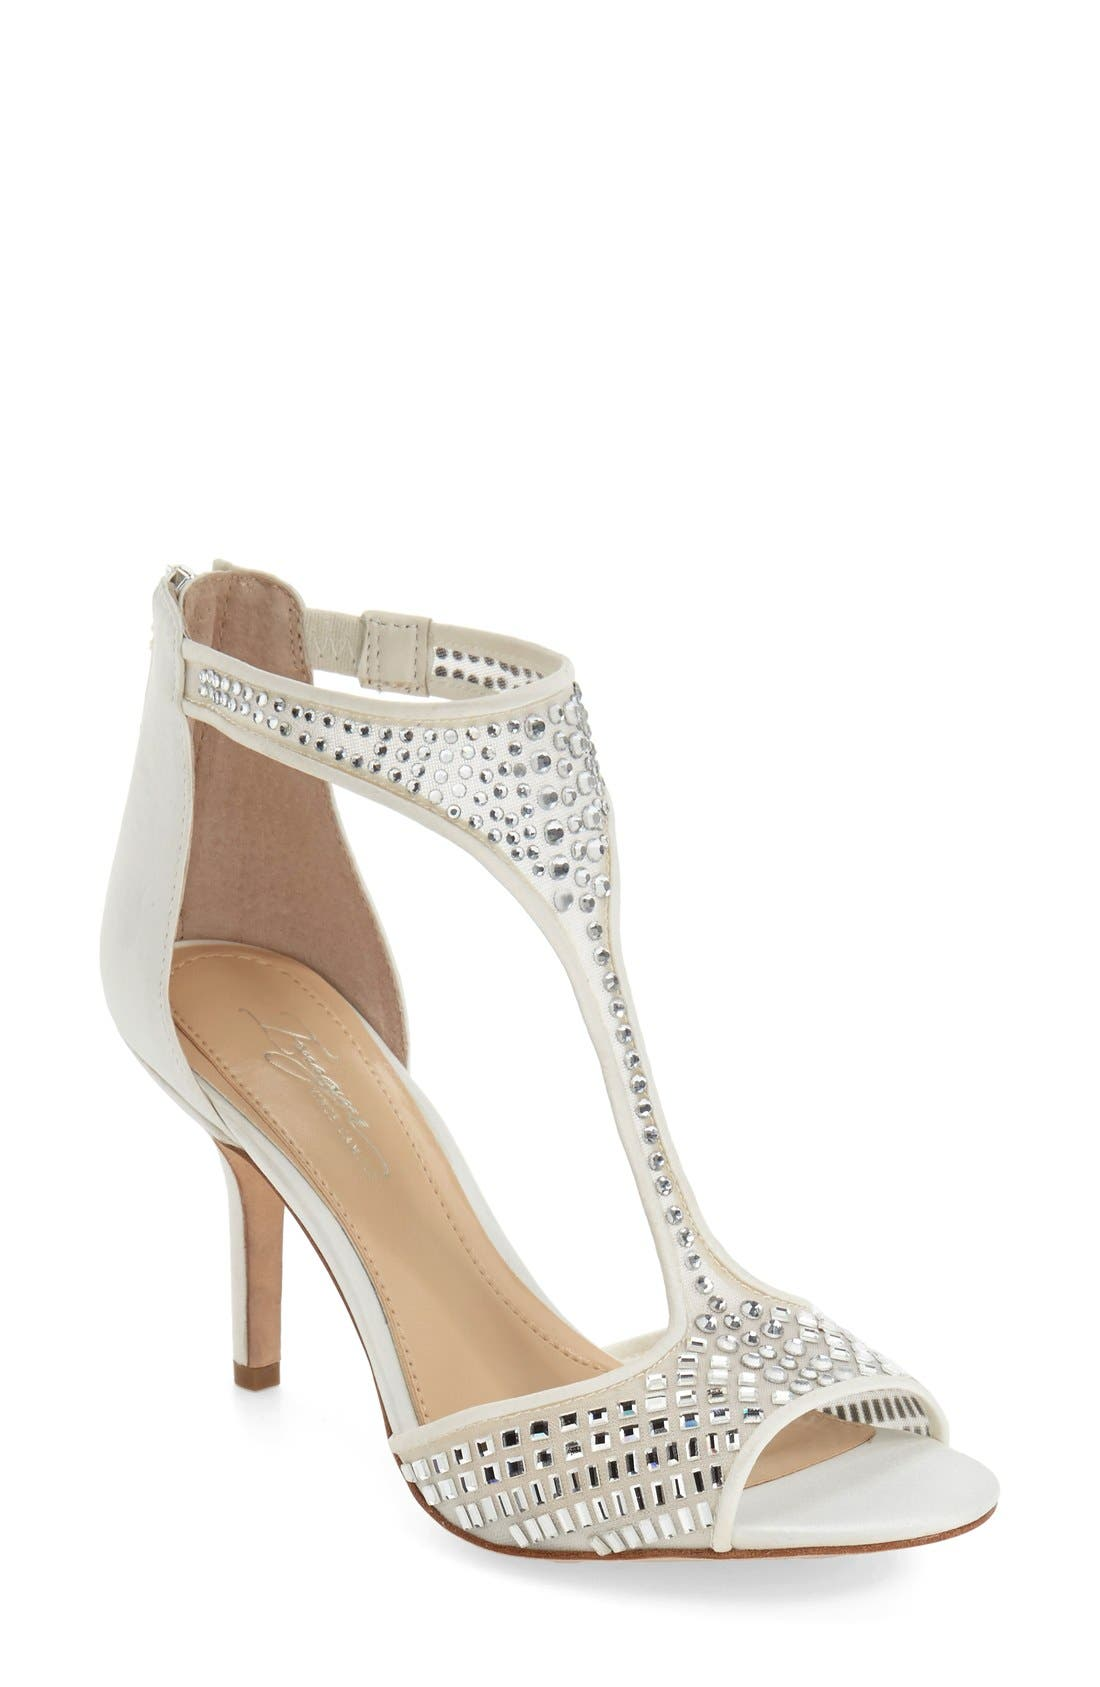 IMAGINE BY VINCE CAMUTO 'Rea' T-Strap Sandal